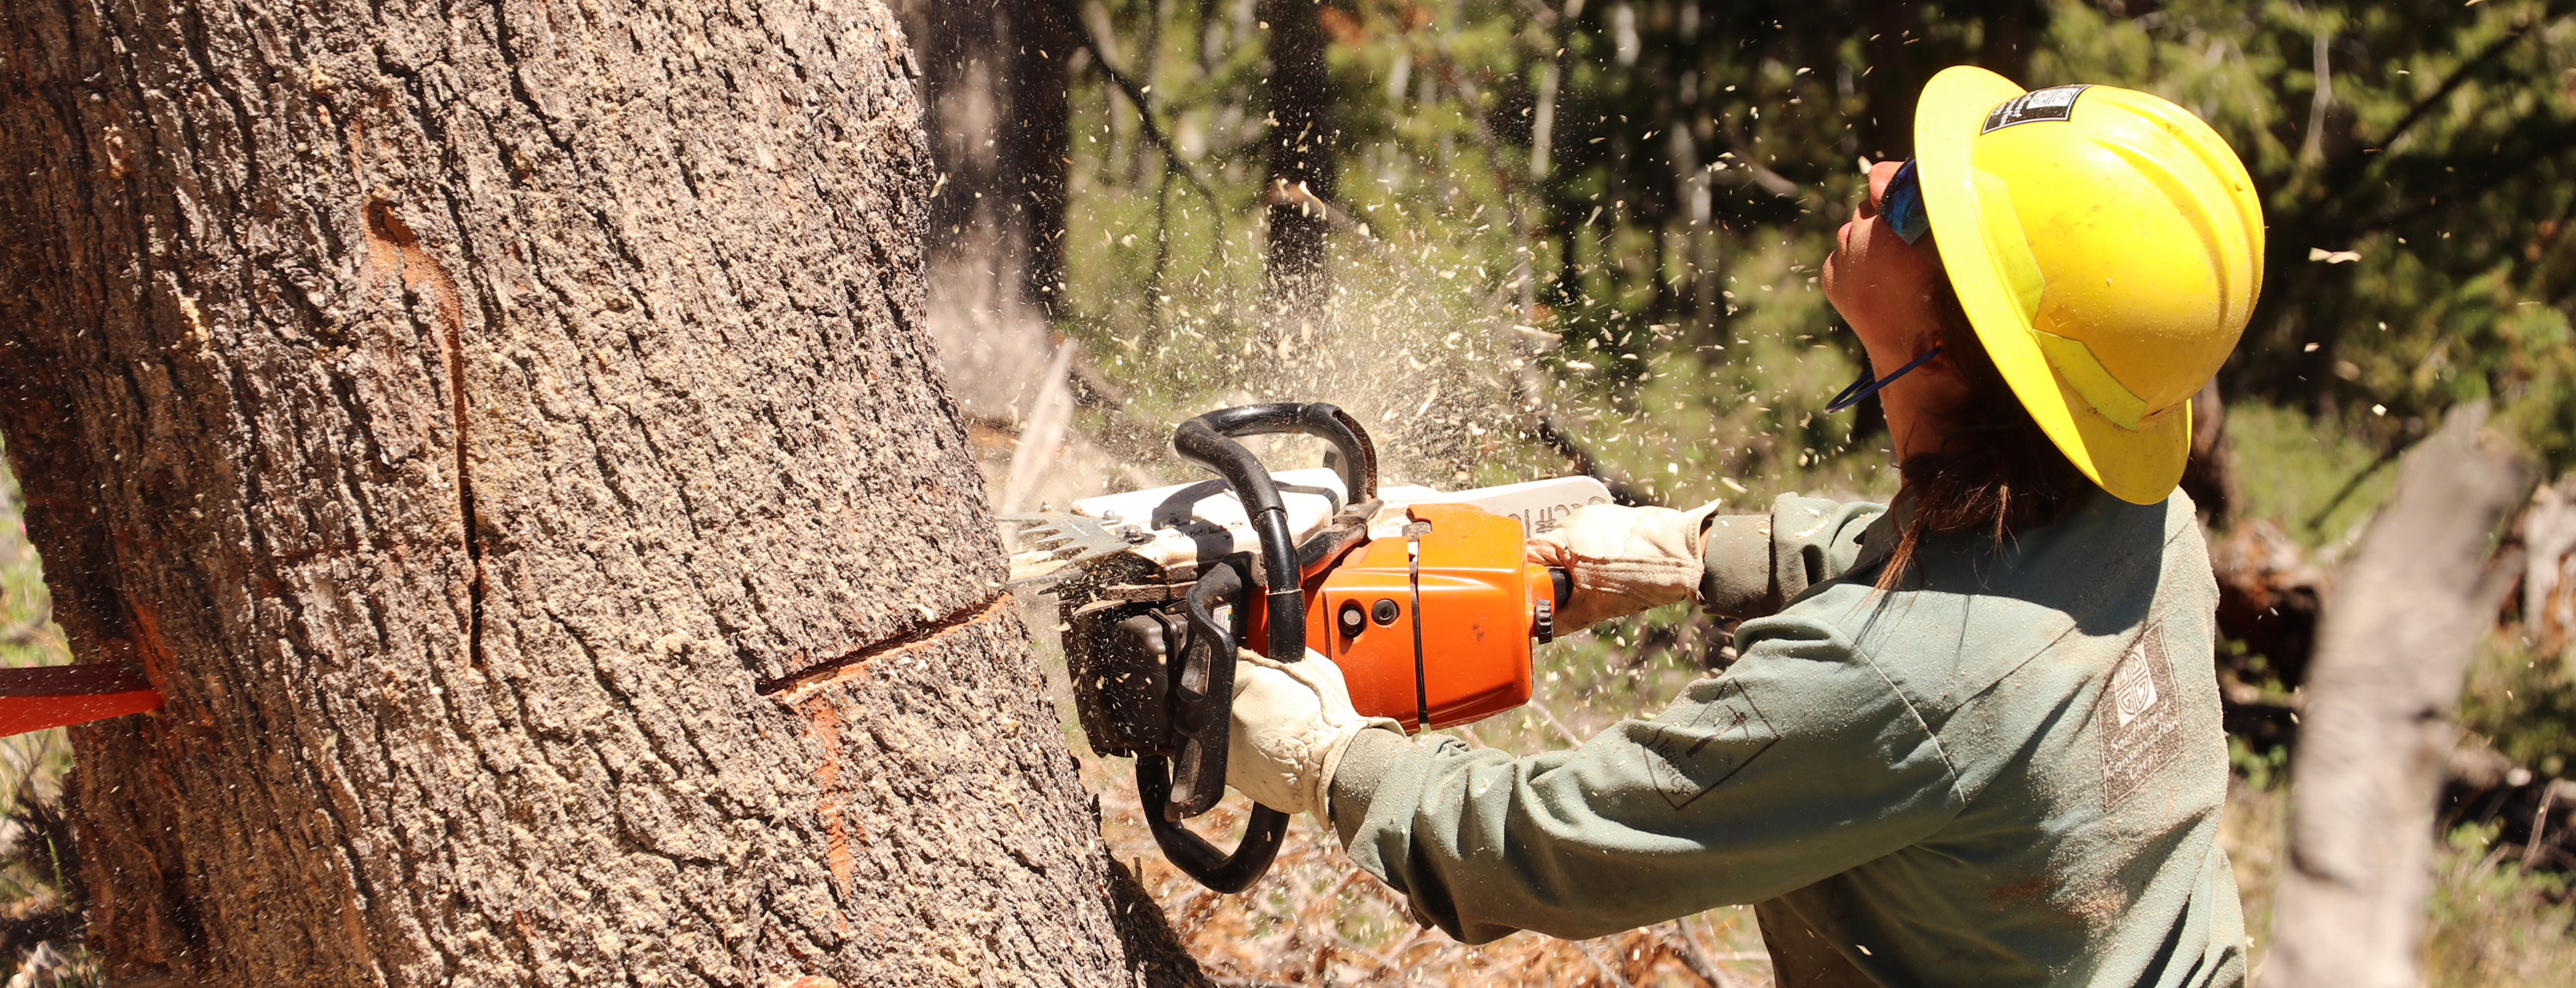 Crew member sawing a tree